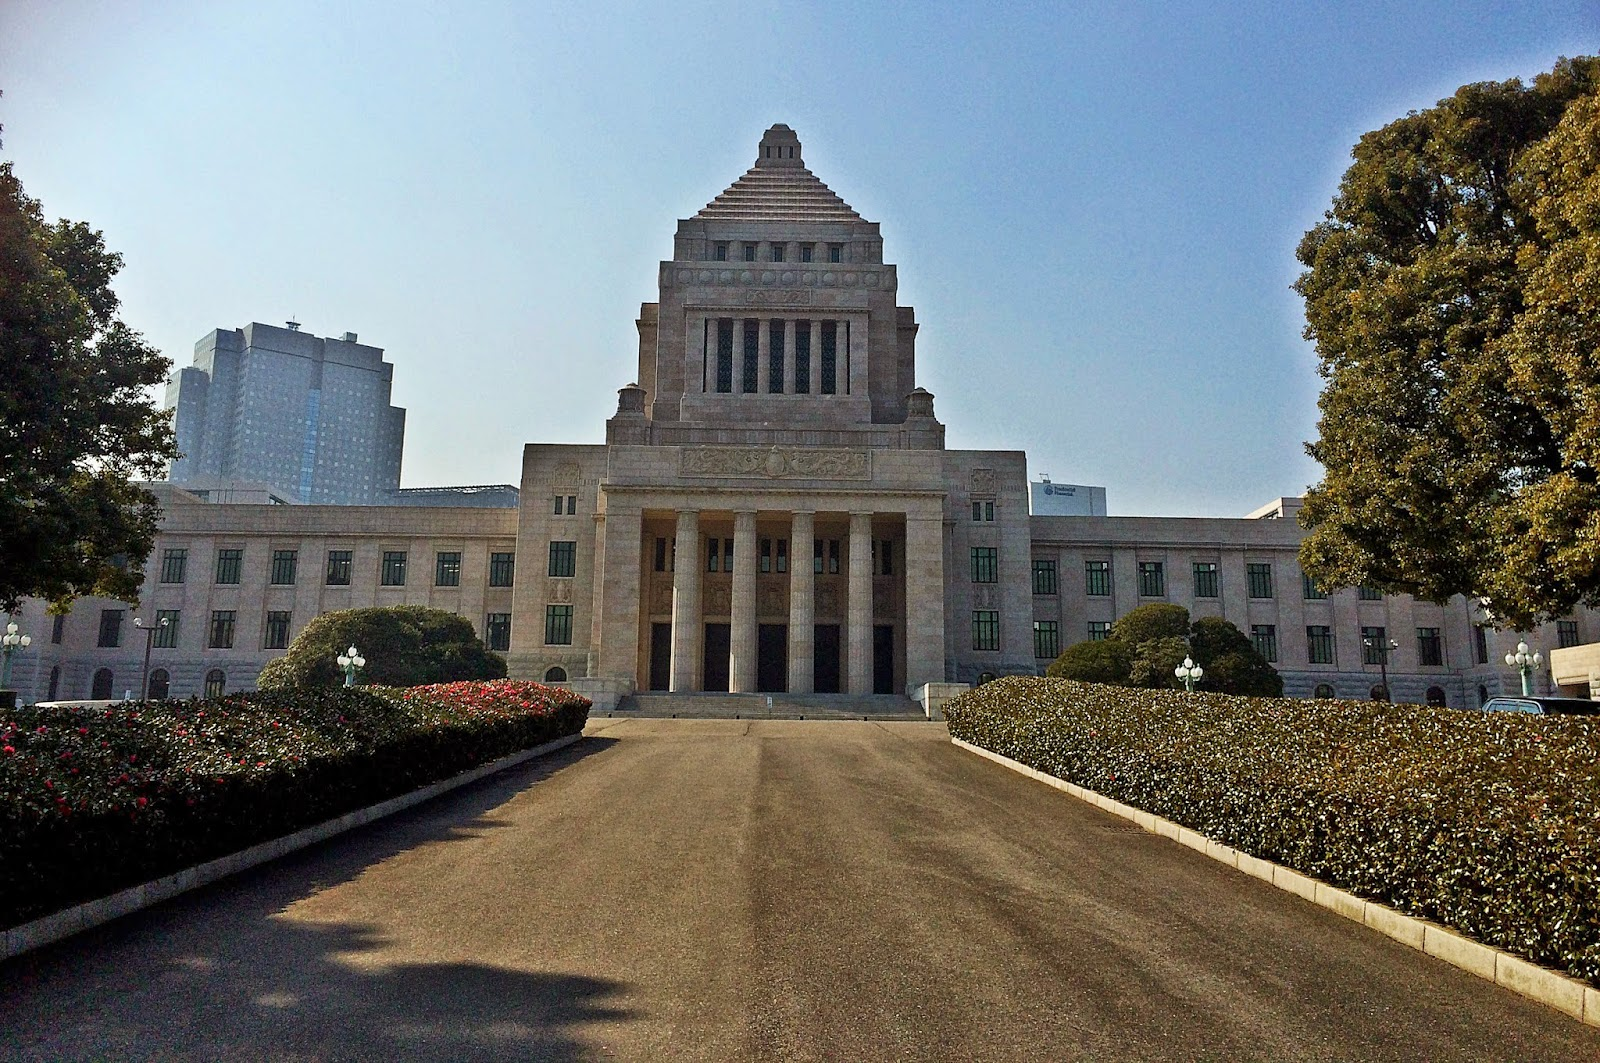 Tokyo - The National Diet Building